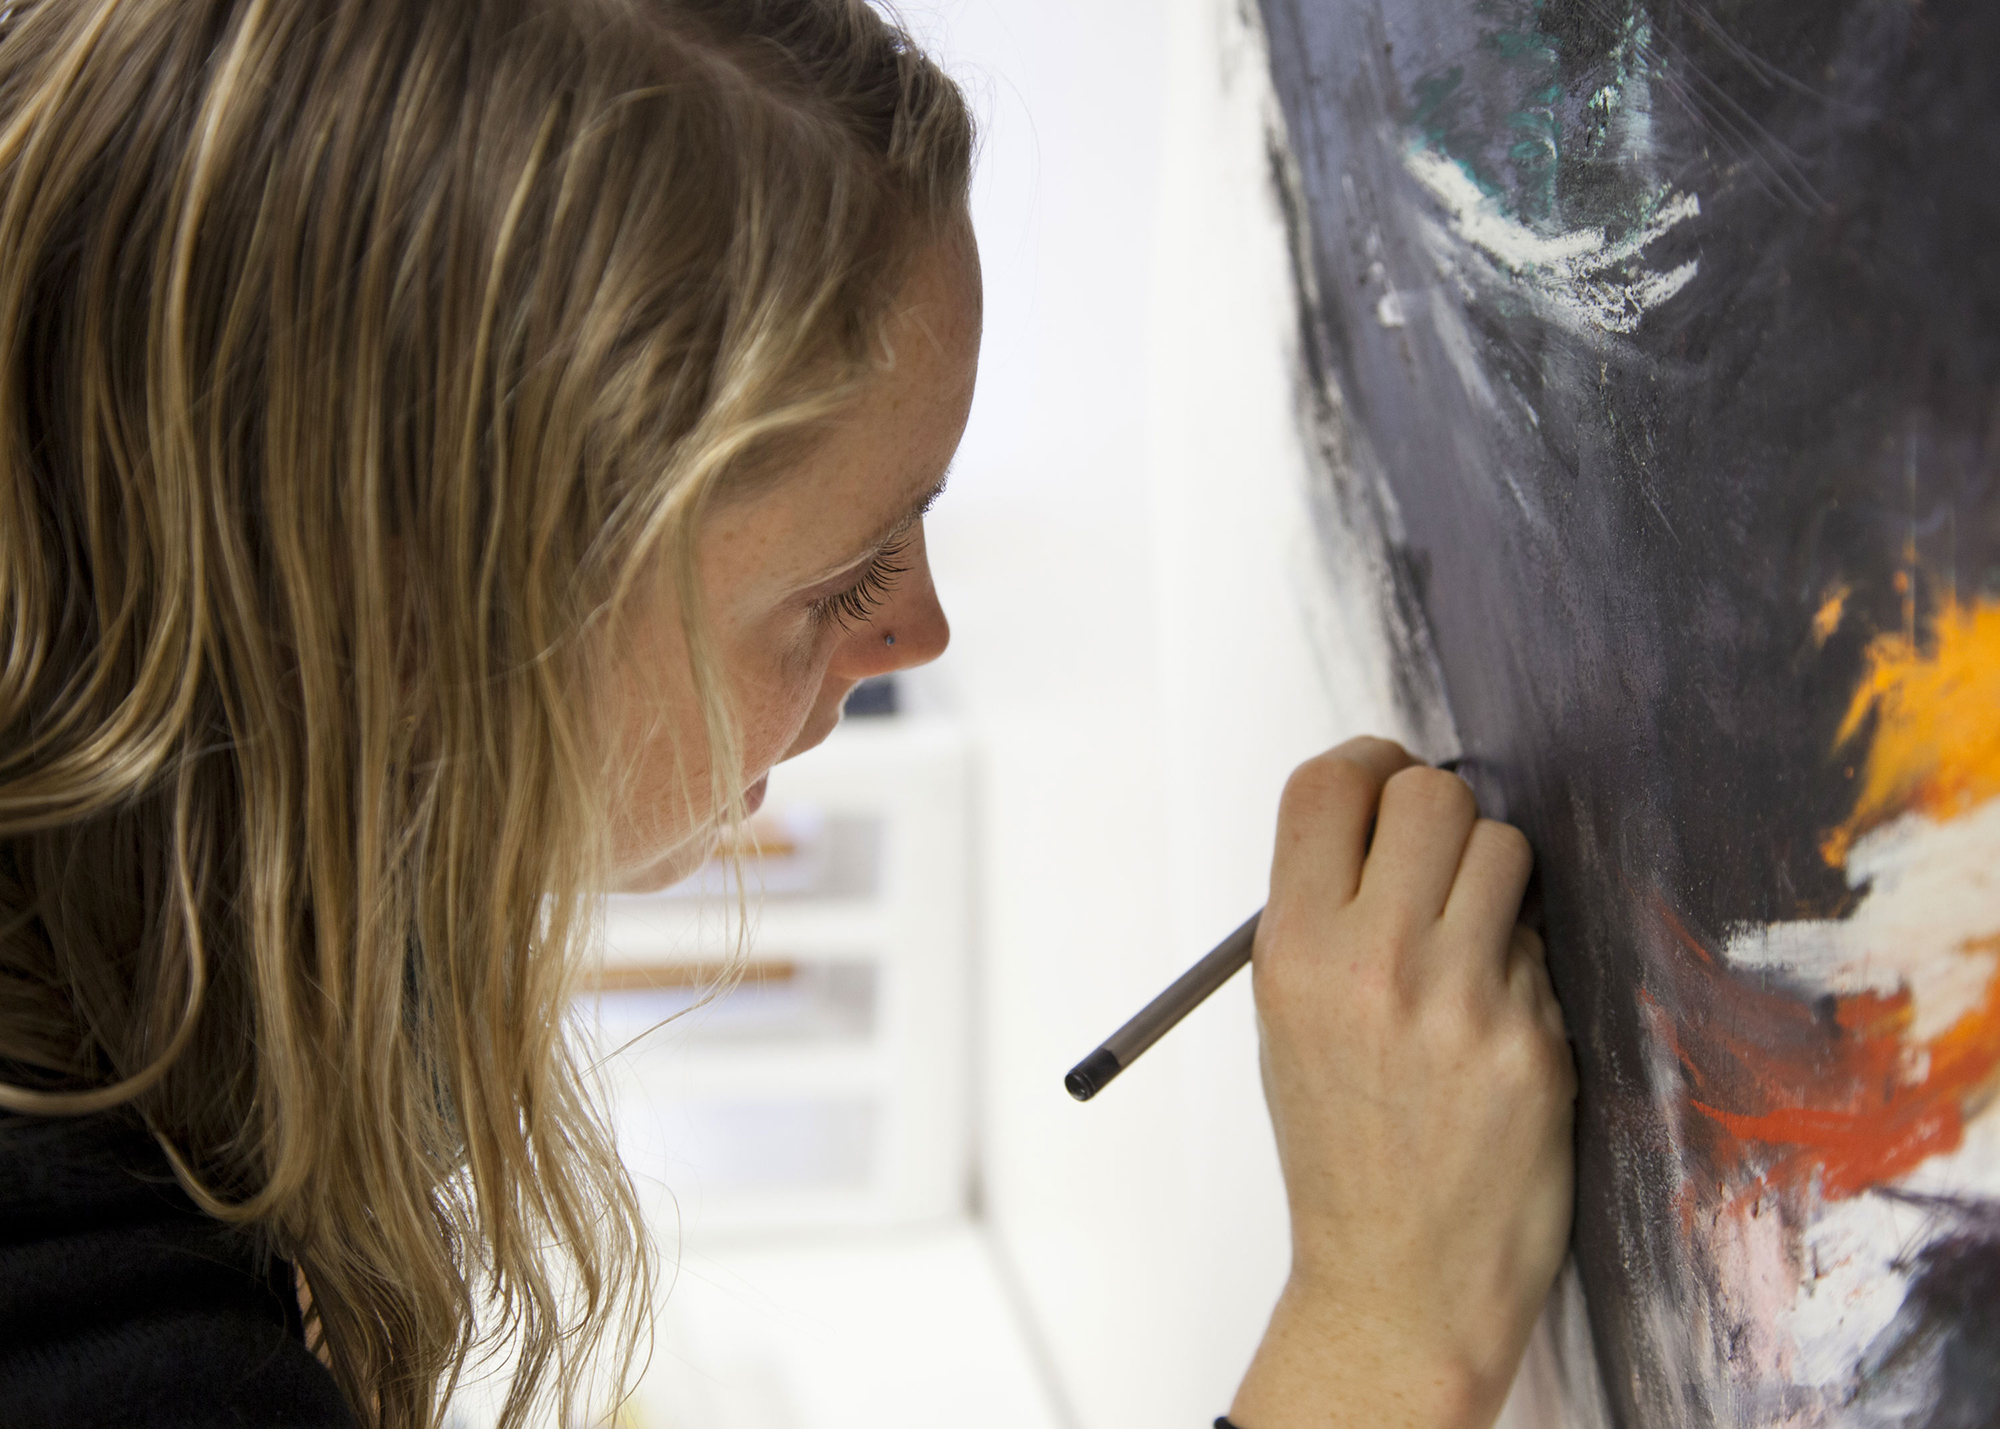 A student leans closely into a large, painted canvas, adding small details with a pencil.